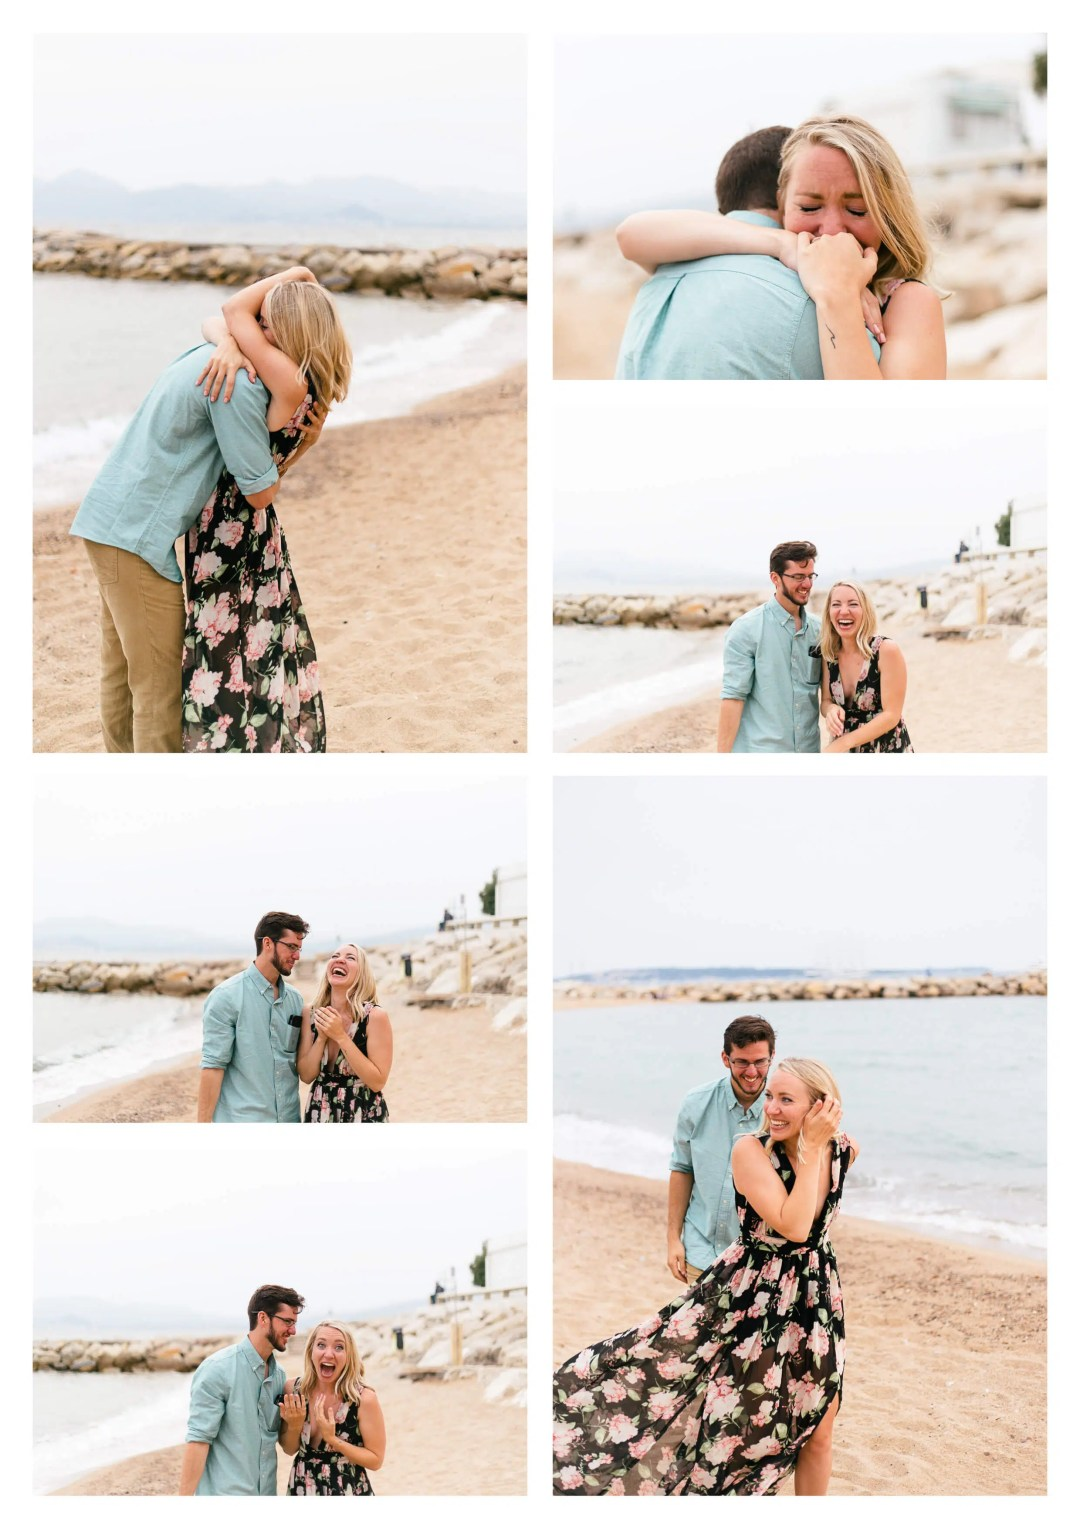 Cannes Emotional Suprise Proposal Engagement Photography